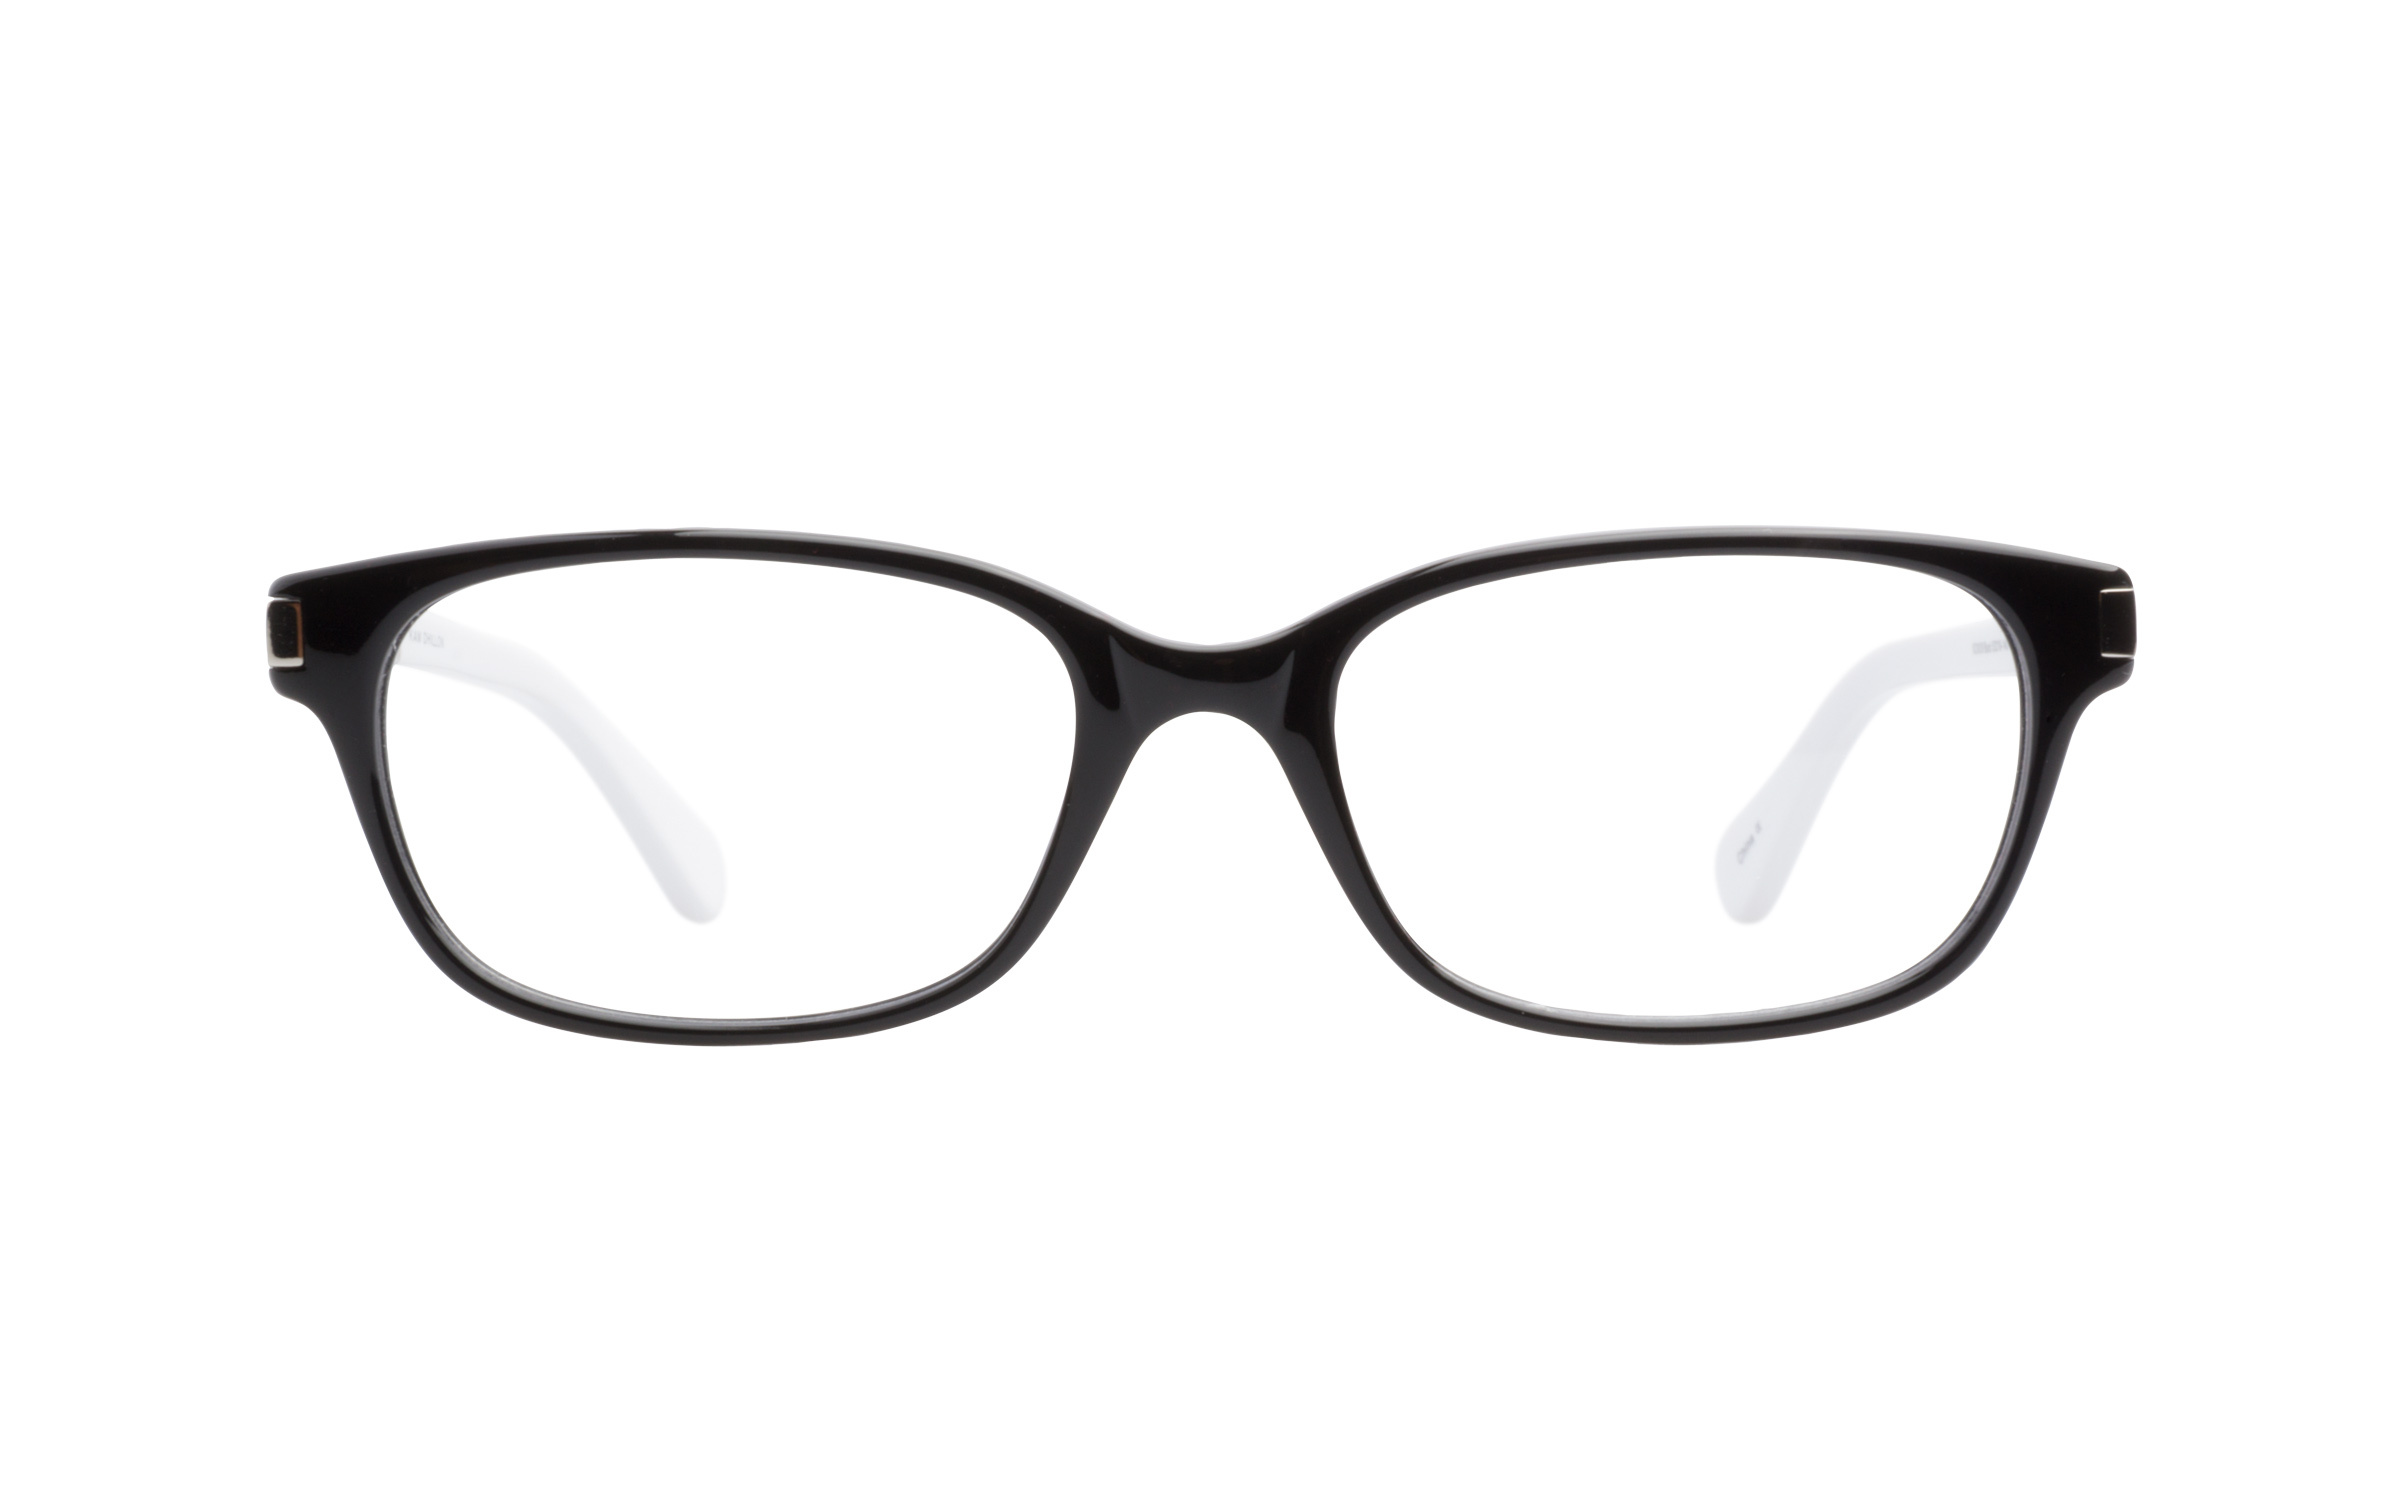 Kam_Dhillon_Womens_Glasses_Elegant_Black_AcetateMetal_Online_Coastal